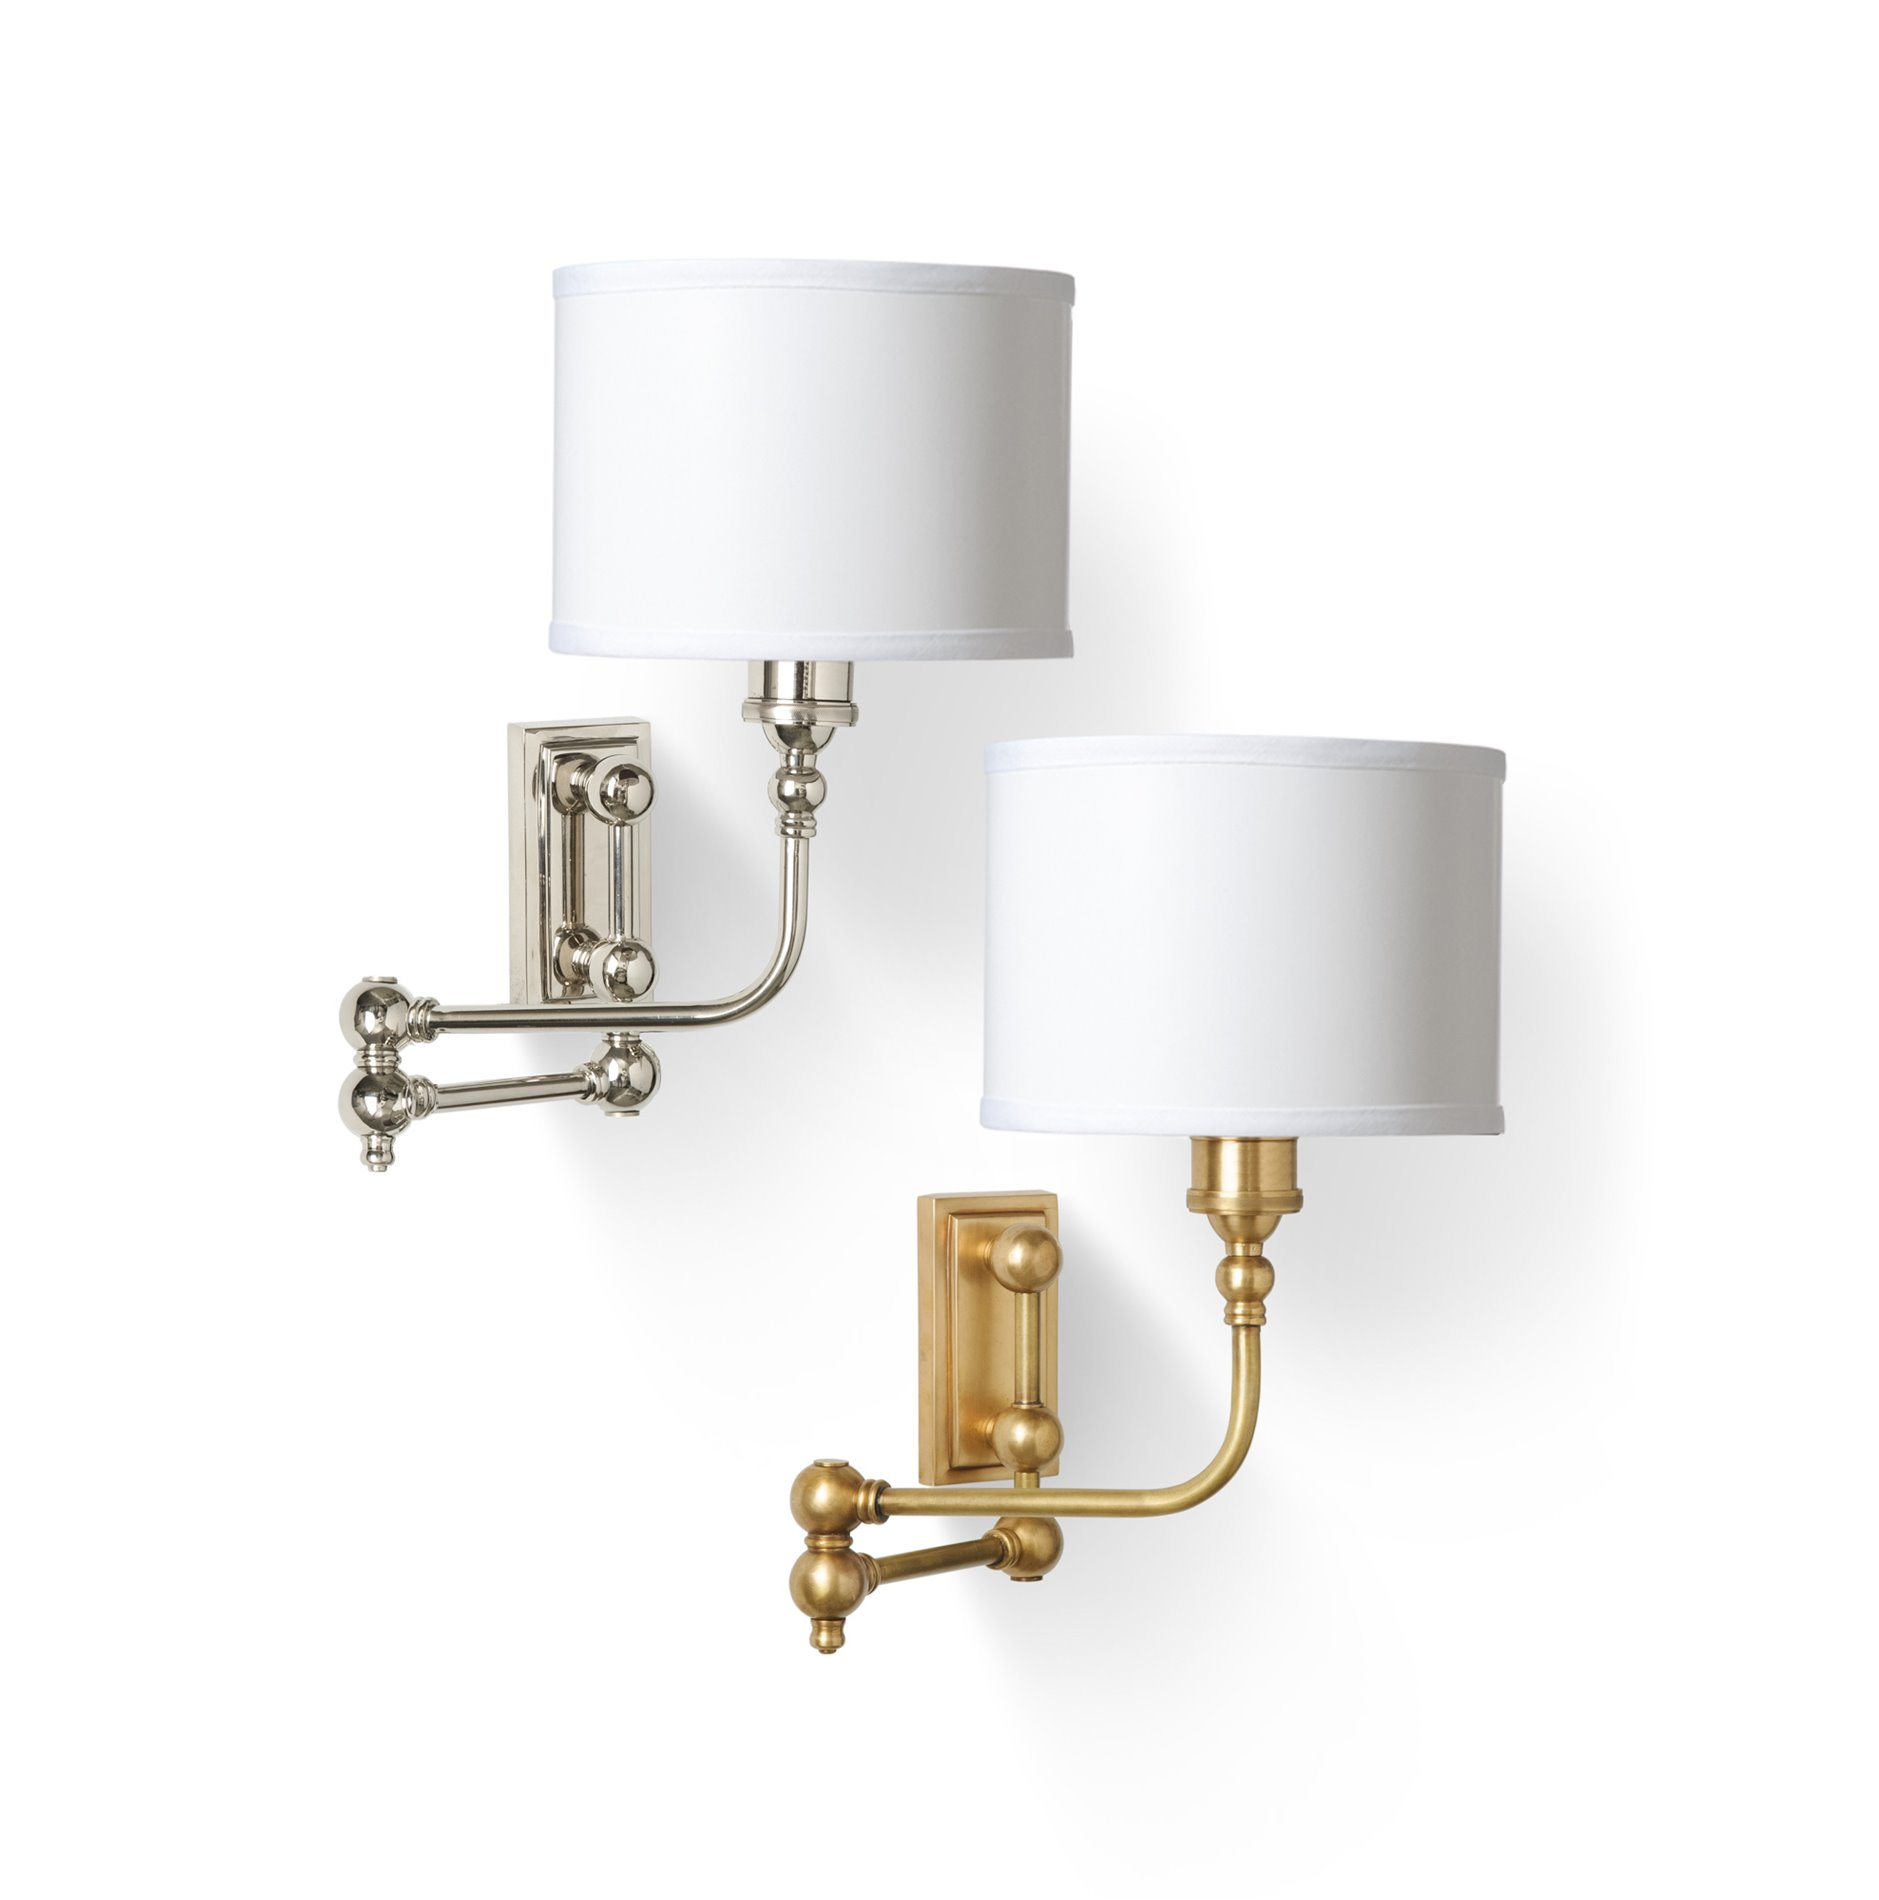 Wall Sconces Swing Arm : Barbara Cosgrove BC909 Swing Arm Wall Sconce in Antique Brass Finish BCG-BC909